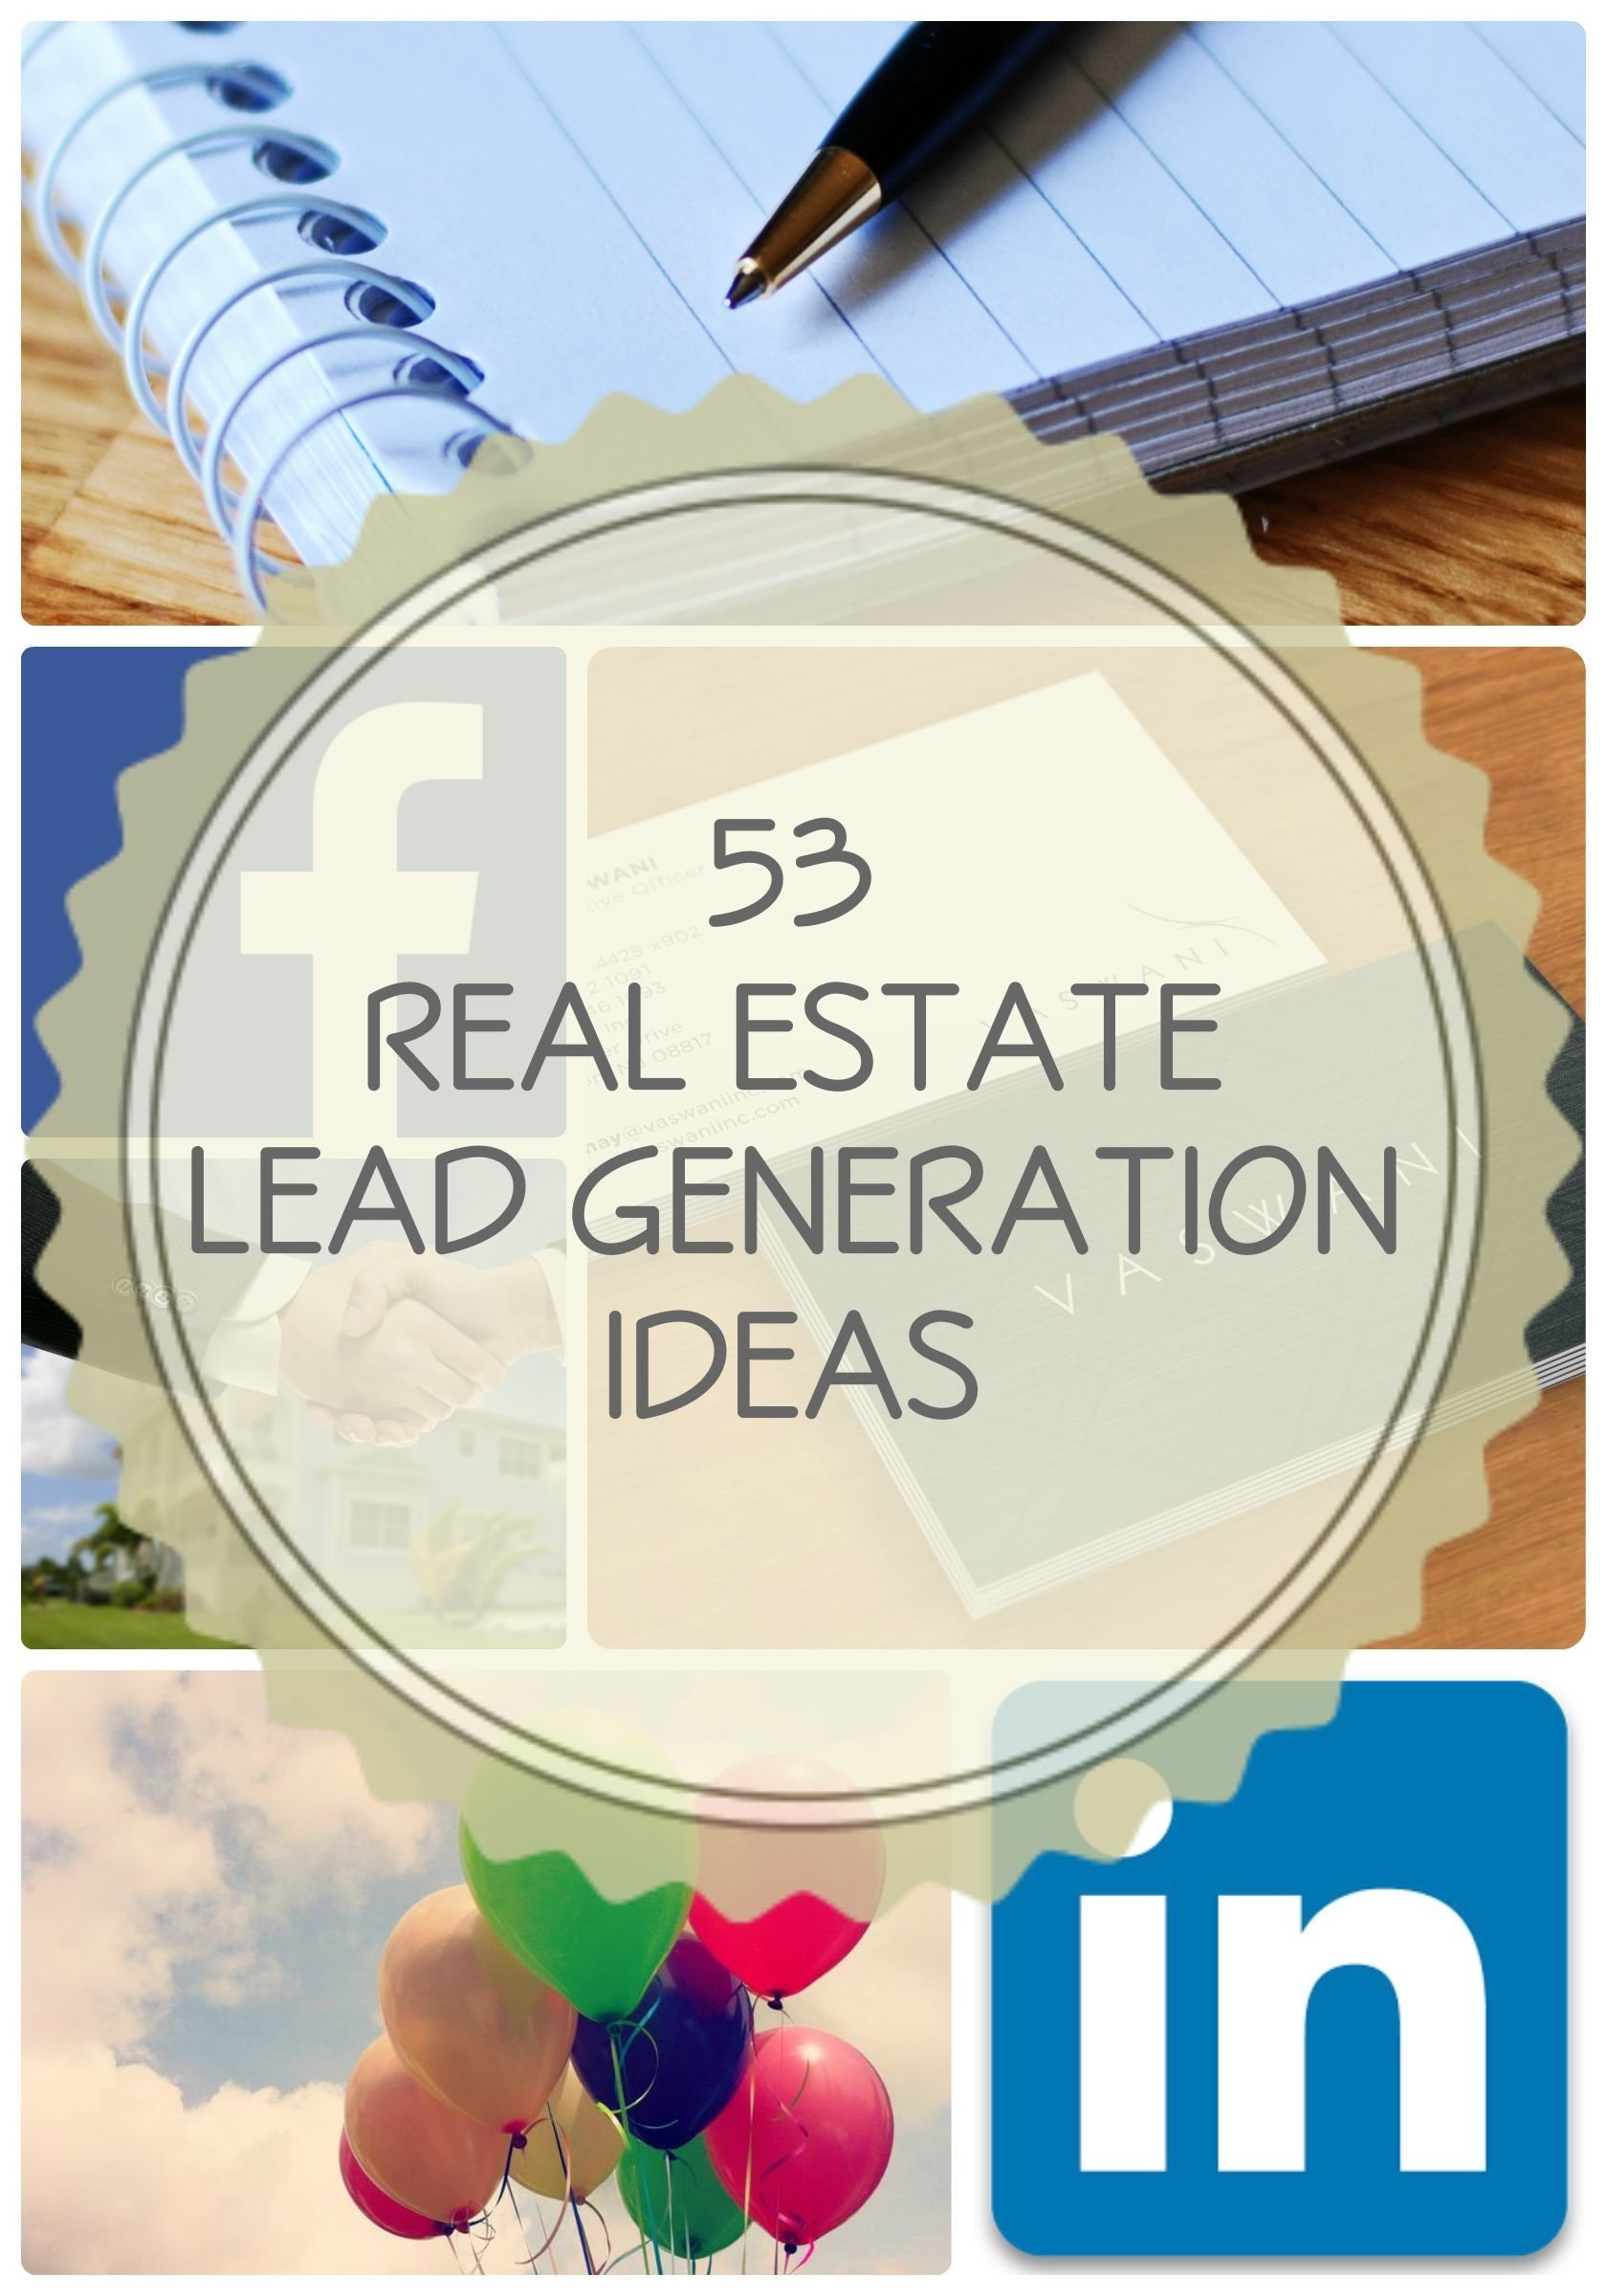 10 Unique Real Estate Lead Generation Ideas 53 real estate lead generation ideas theres one top secret 2020